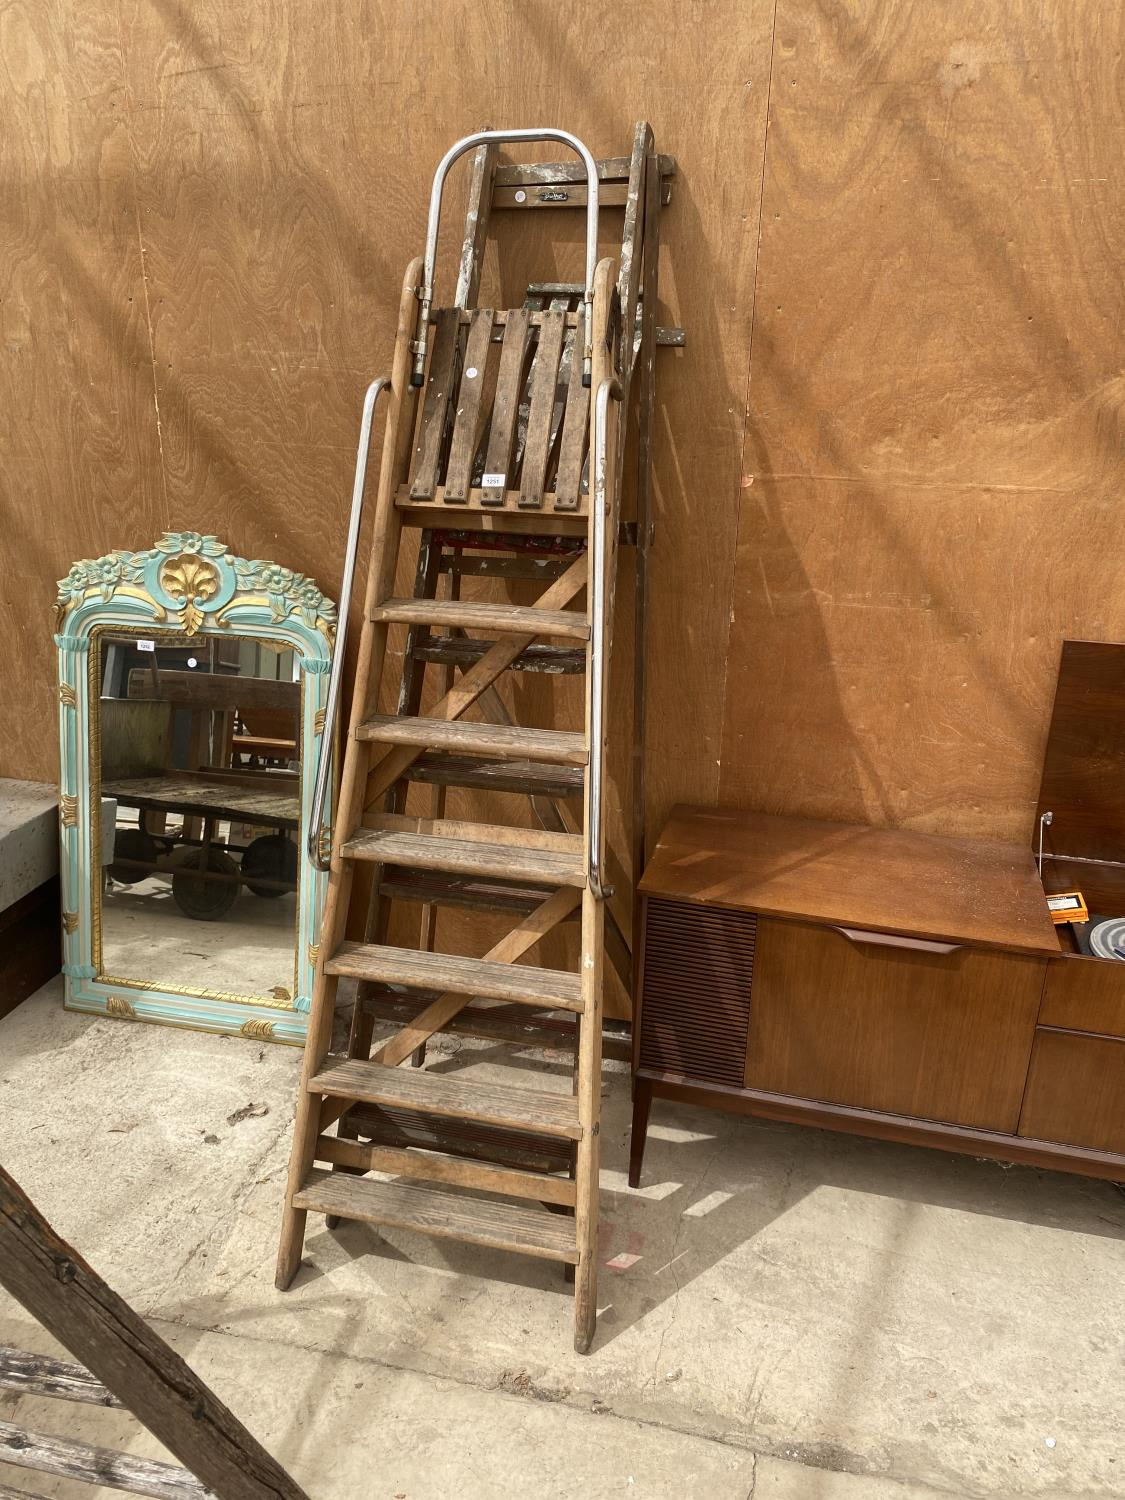 A VINTAGE 6 RUNG WOODEN STEP LADDER AND A VINTAGE 5 RUNG WOODEN STEP LADDER